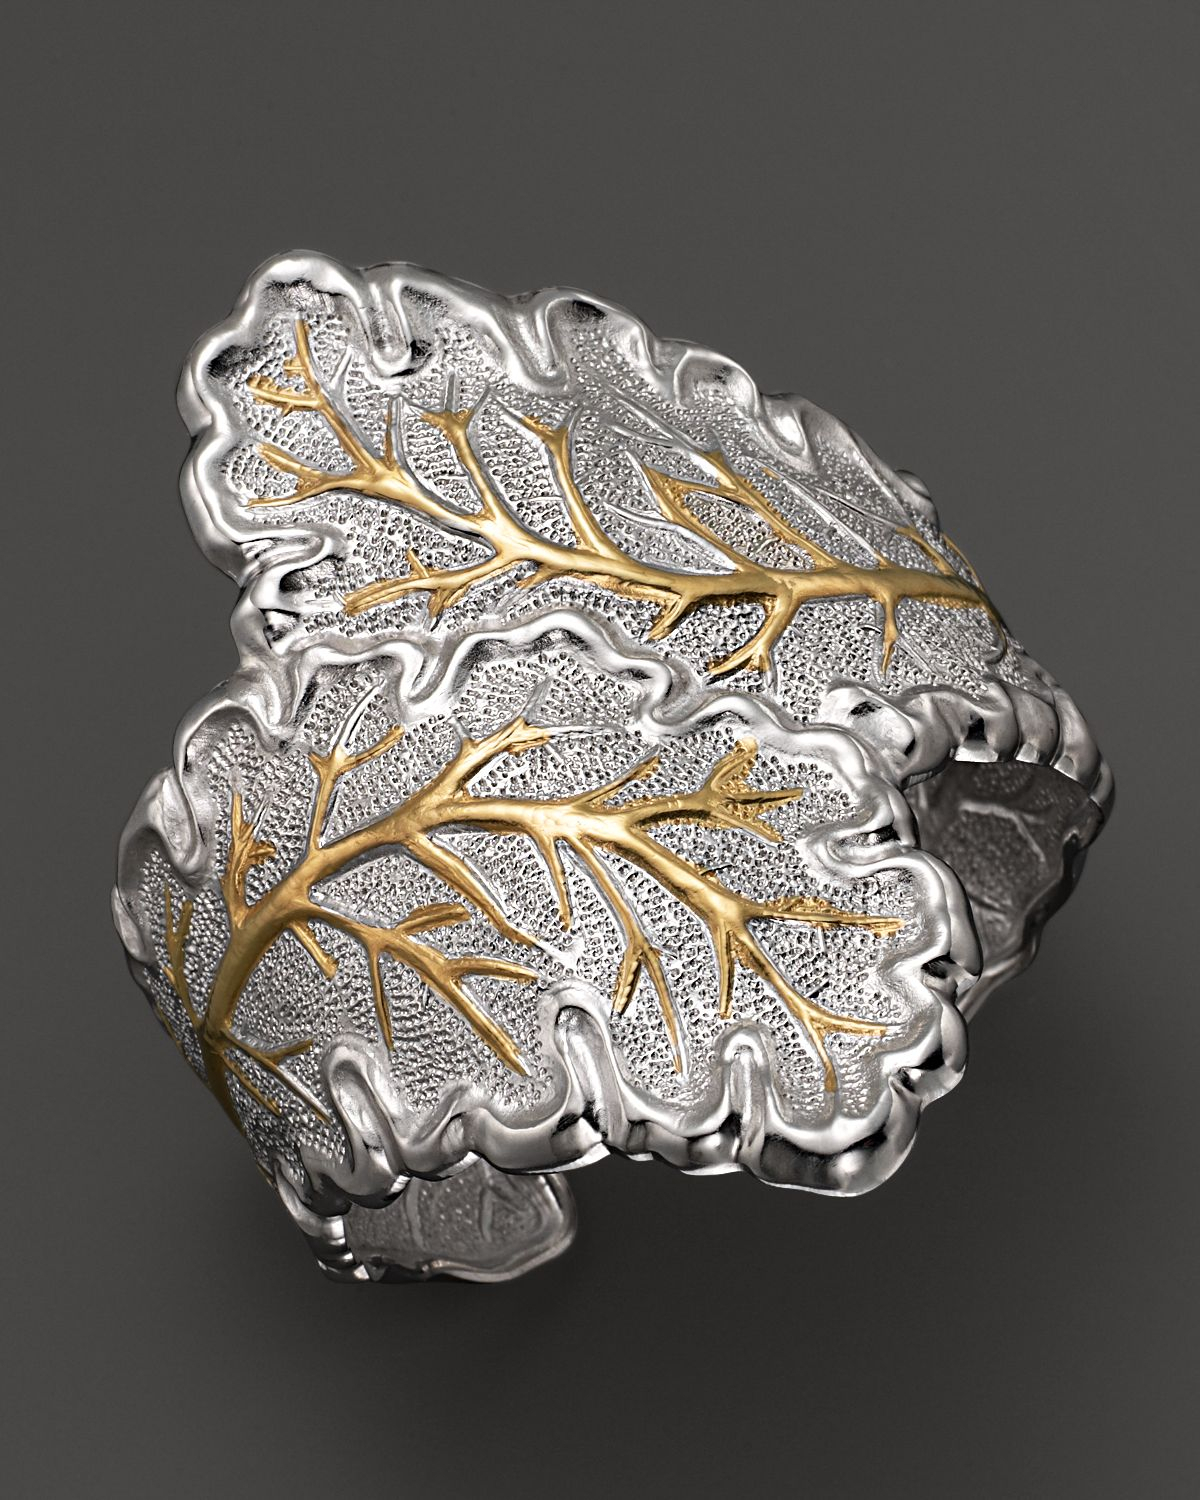 Buccellati Metallic Double Oak Leaf Cuff Bracelet With Gold Accents Pertaining To Latest Oak Leaf Double Rings (View 6 of 25)